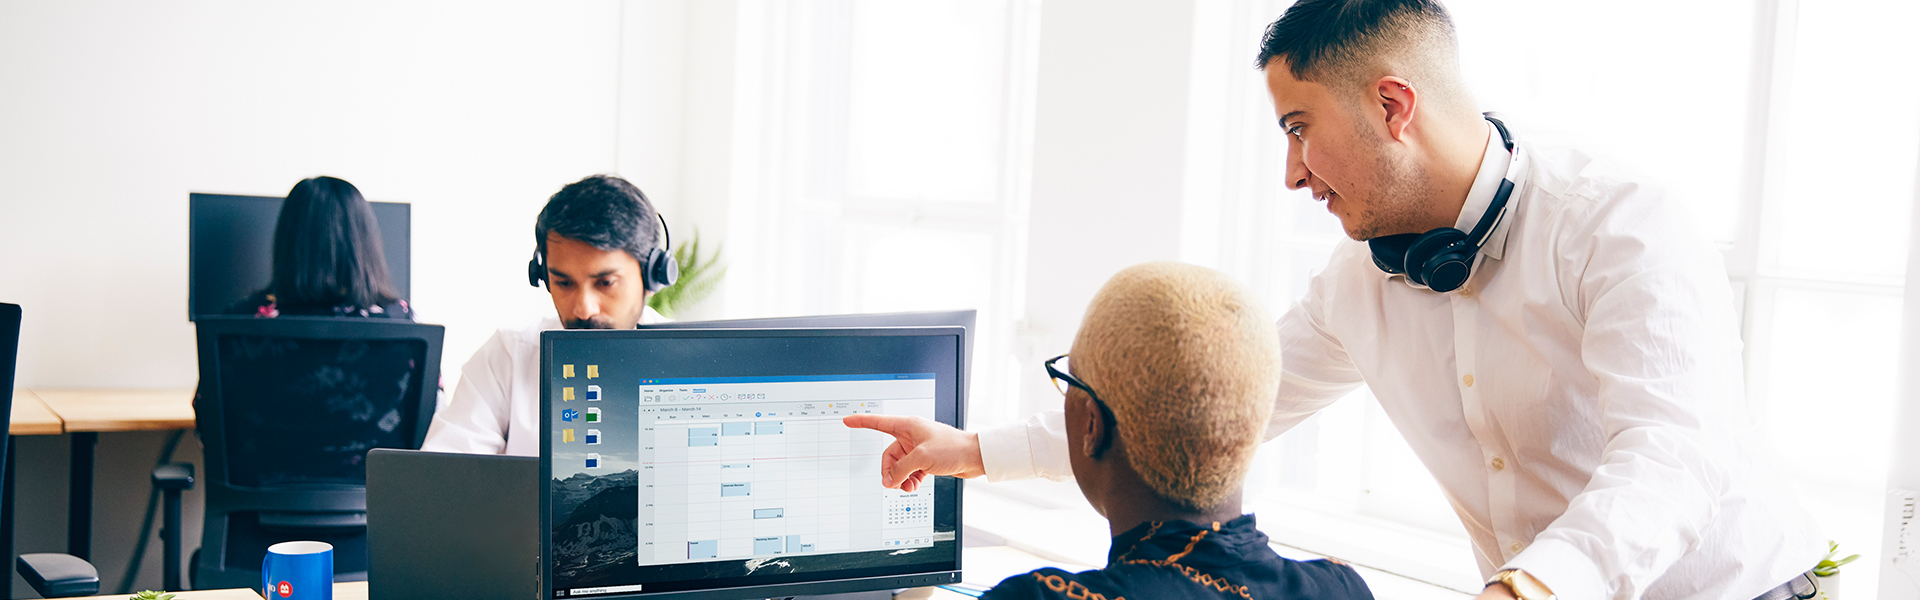 Male employee pointing at computer screen.